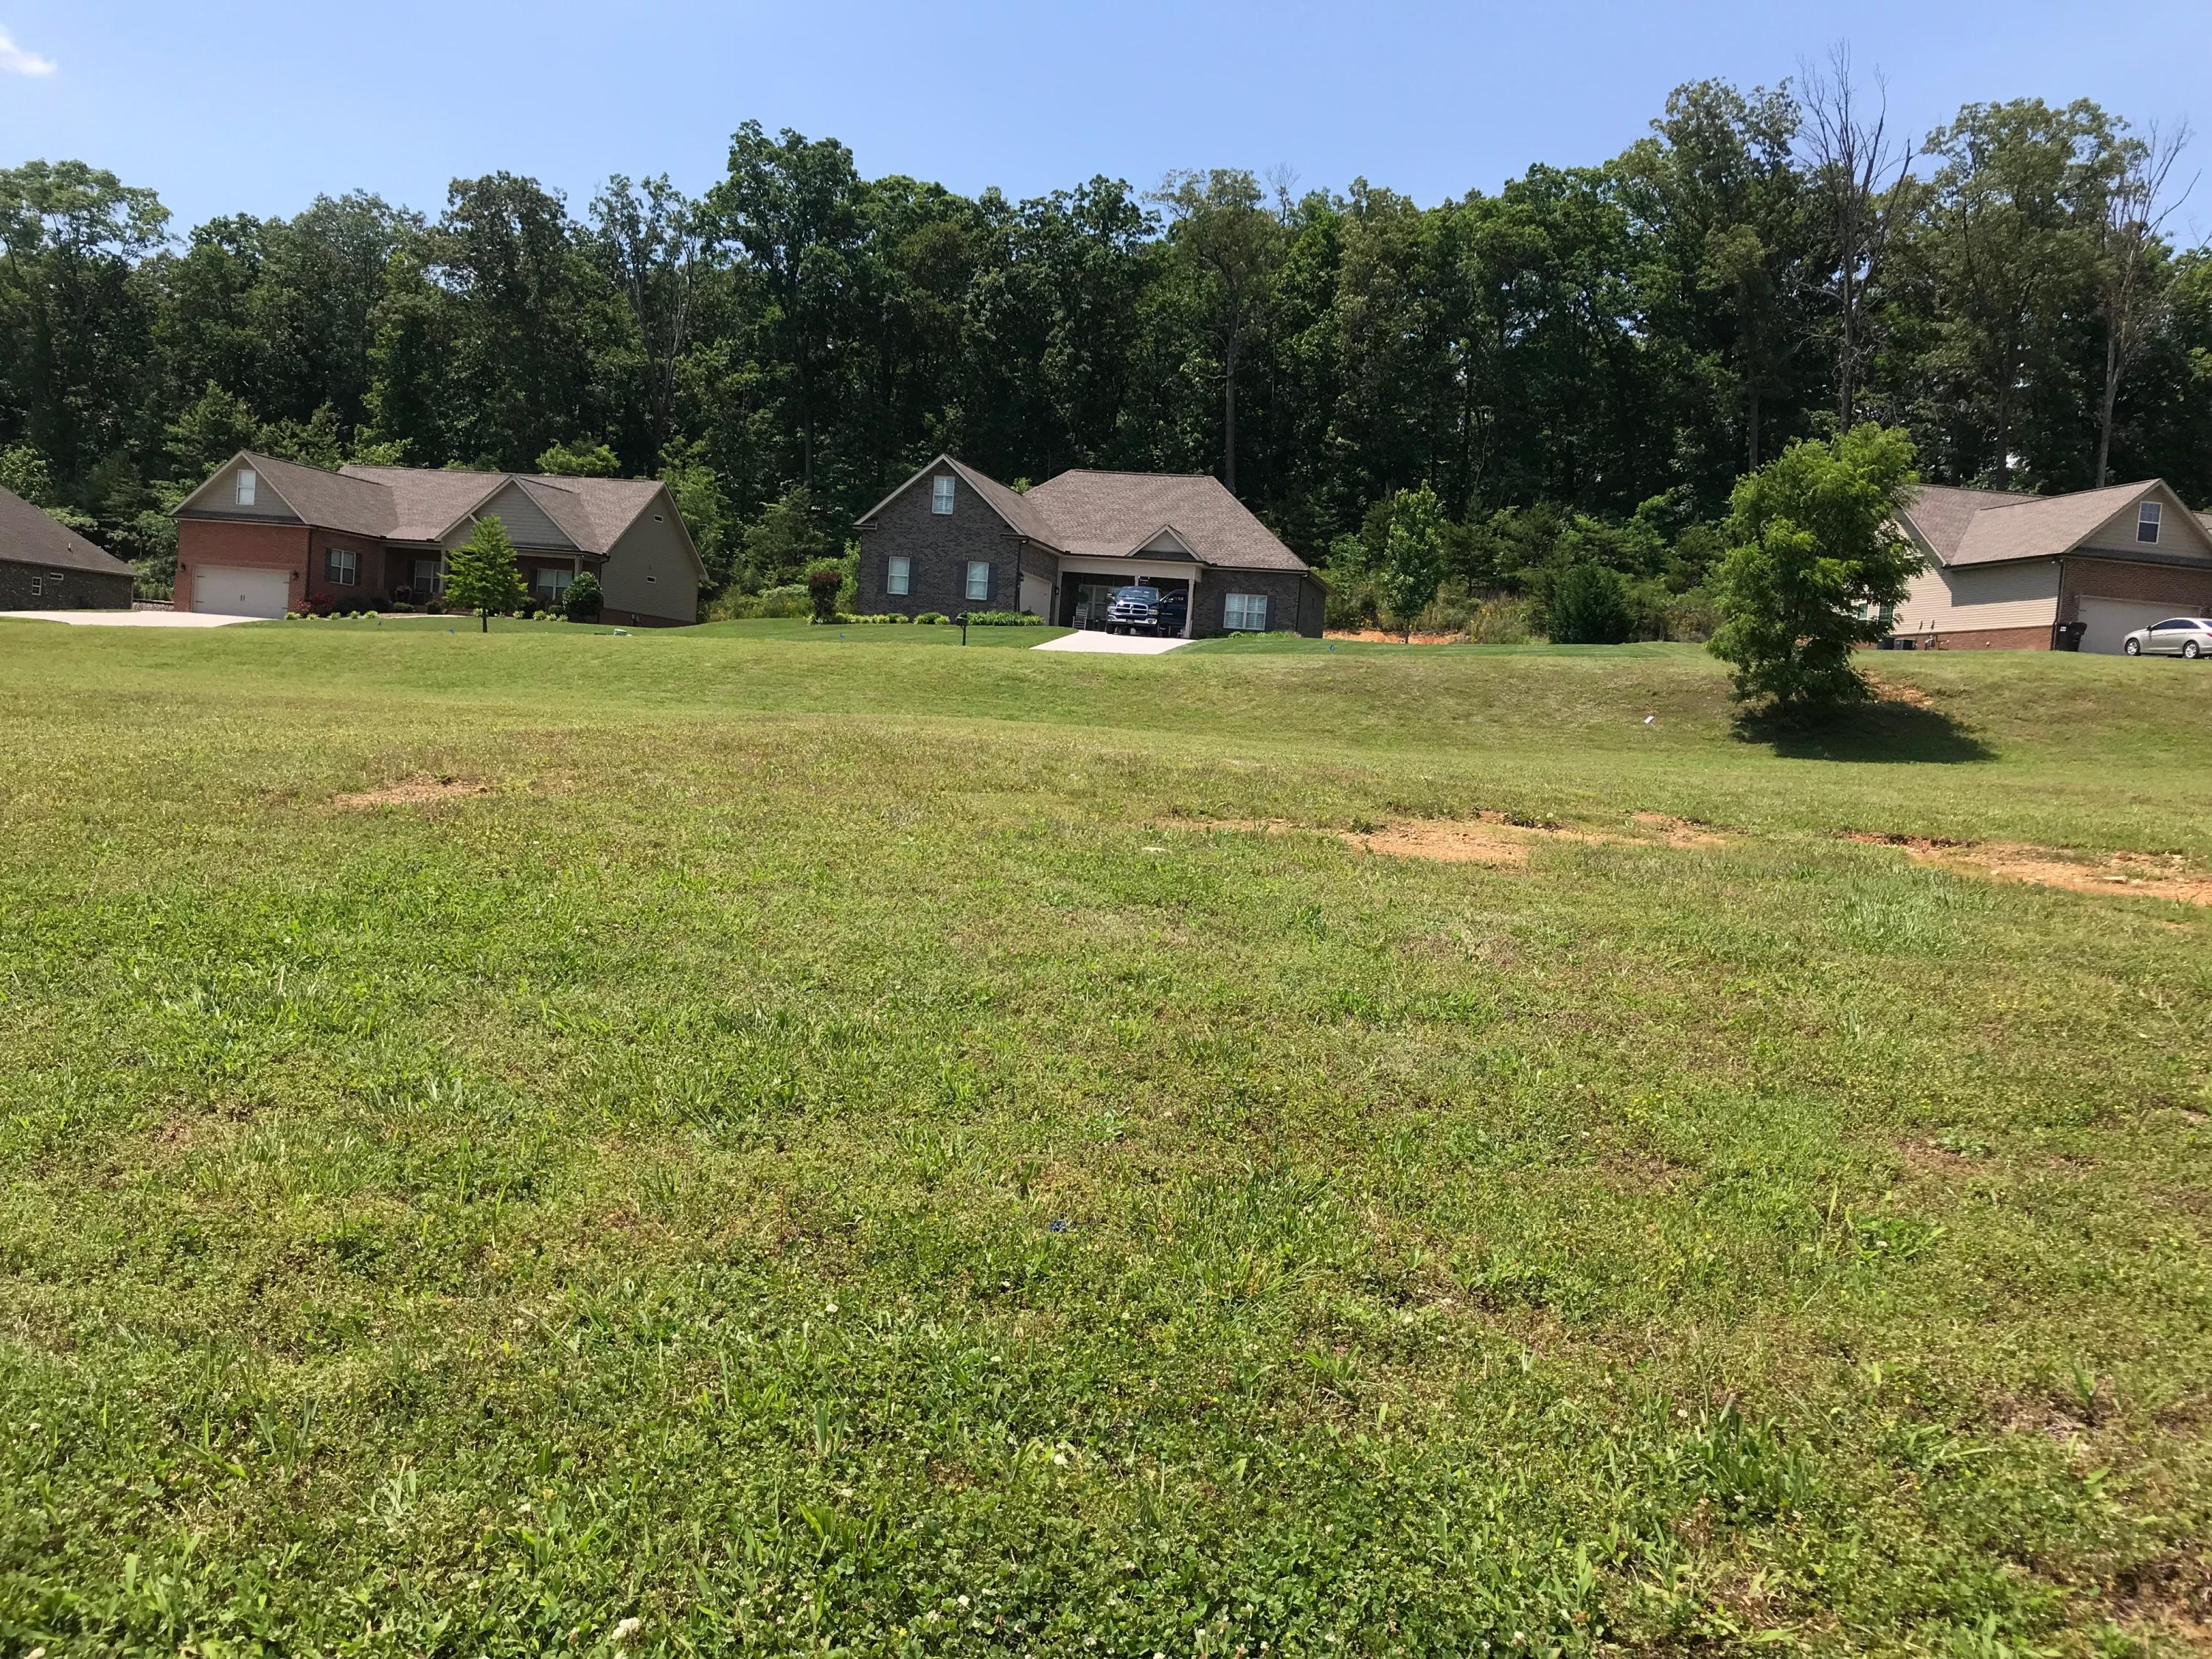 544 Jacksonian Way, Lenoir City, Tennessee 37772, ,Lots & Acreage,For Sale,Jacksonian,1080820